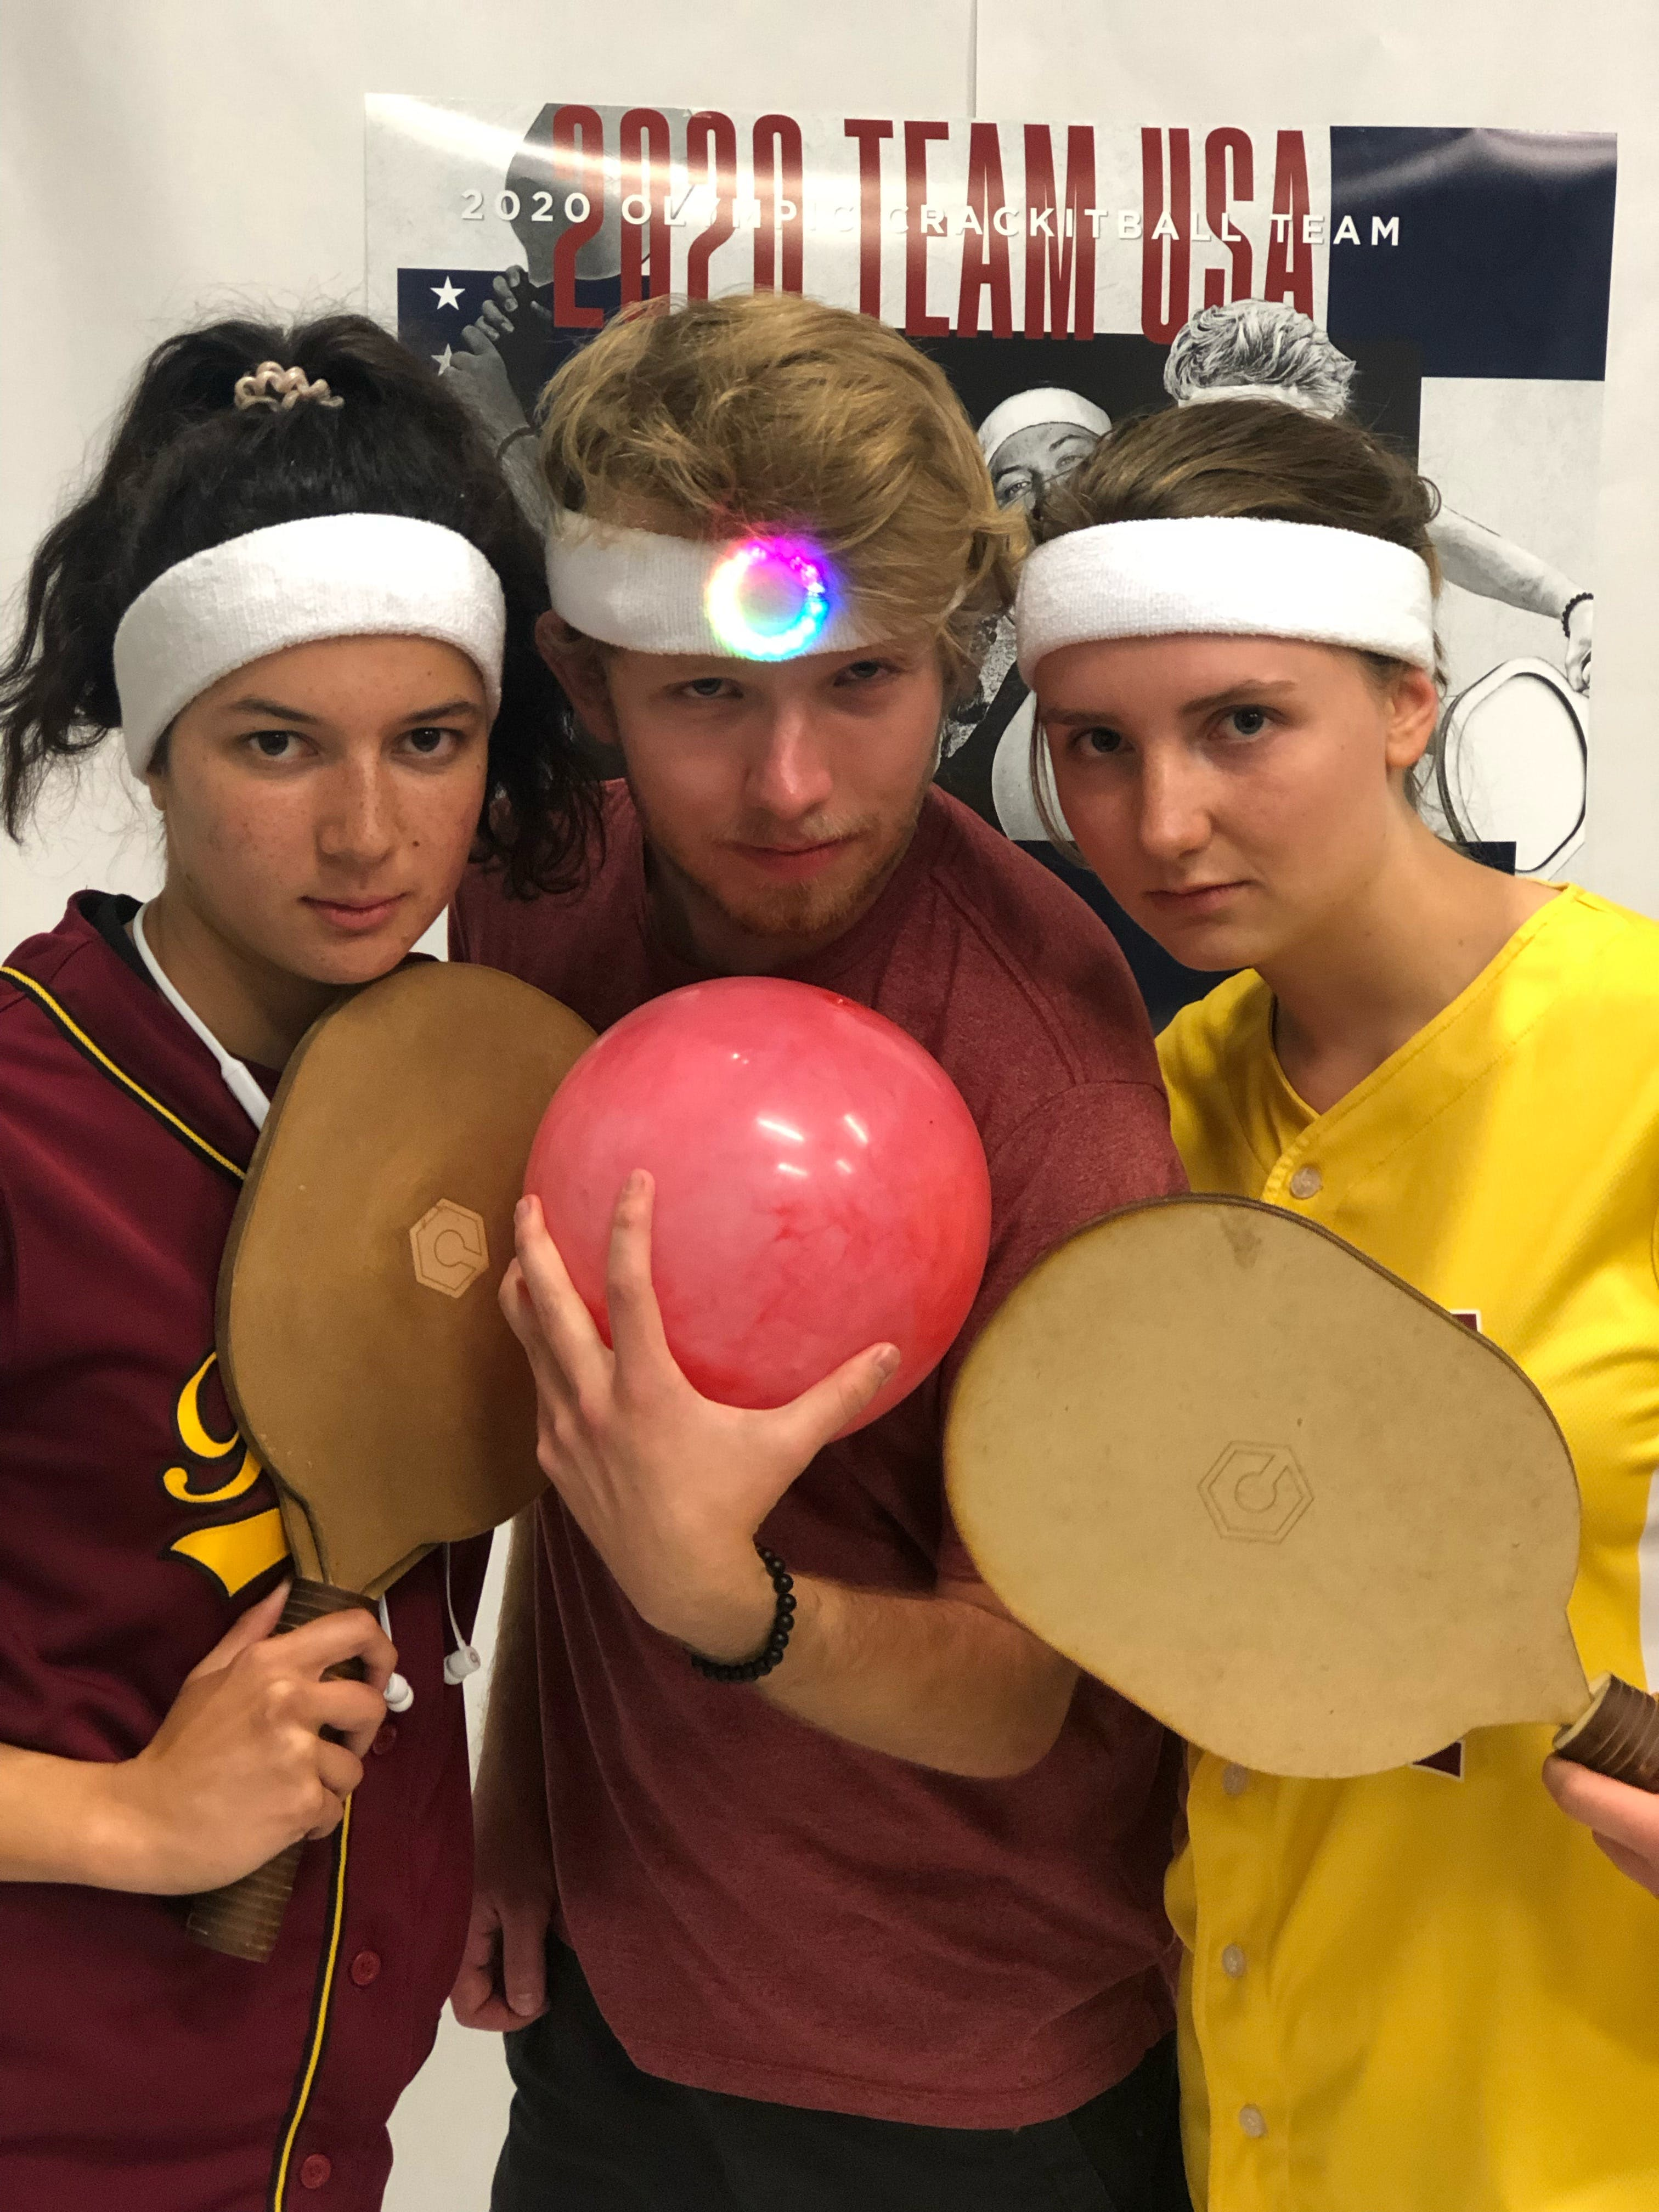 3 college students wearing white headbands staring intensely at the camera